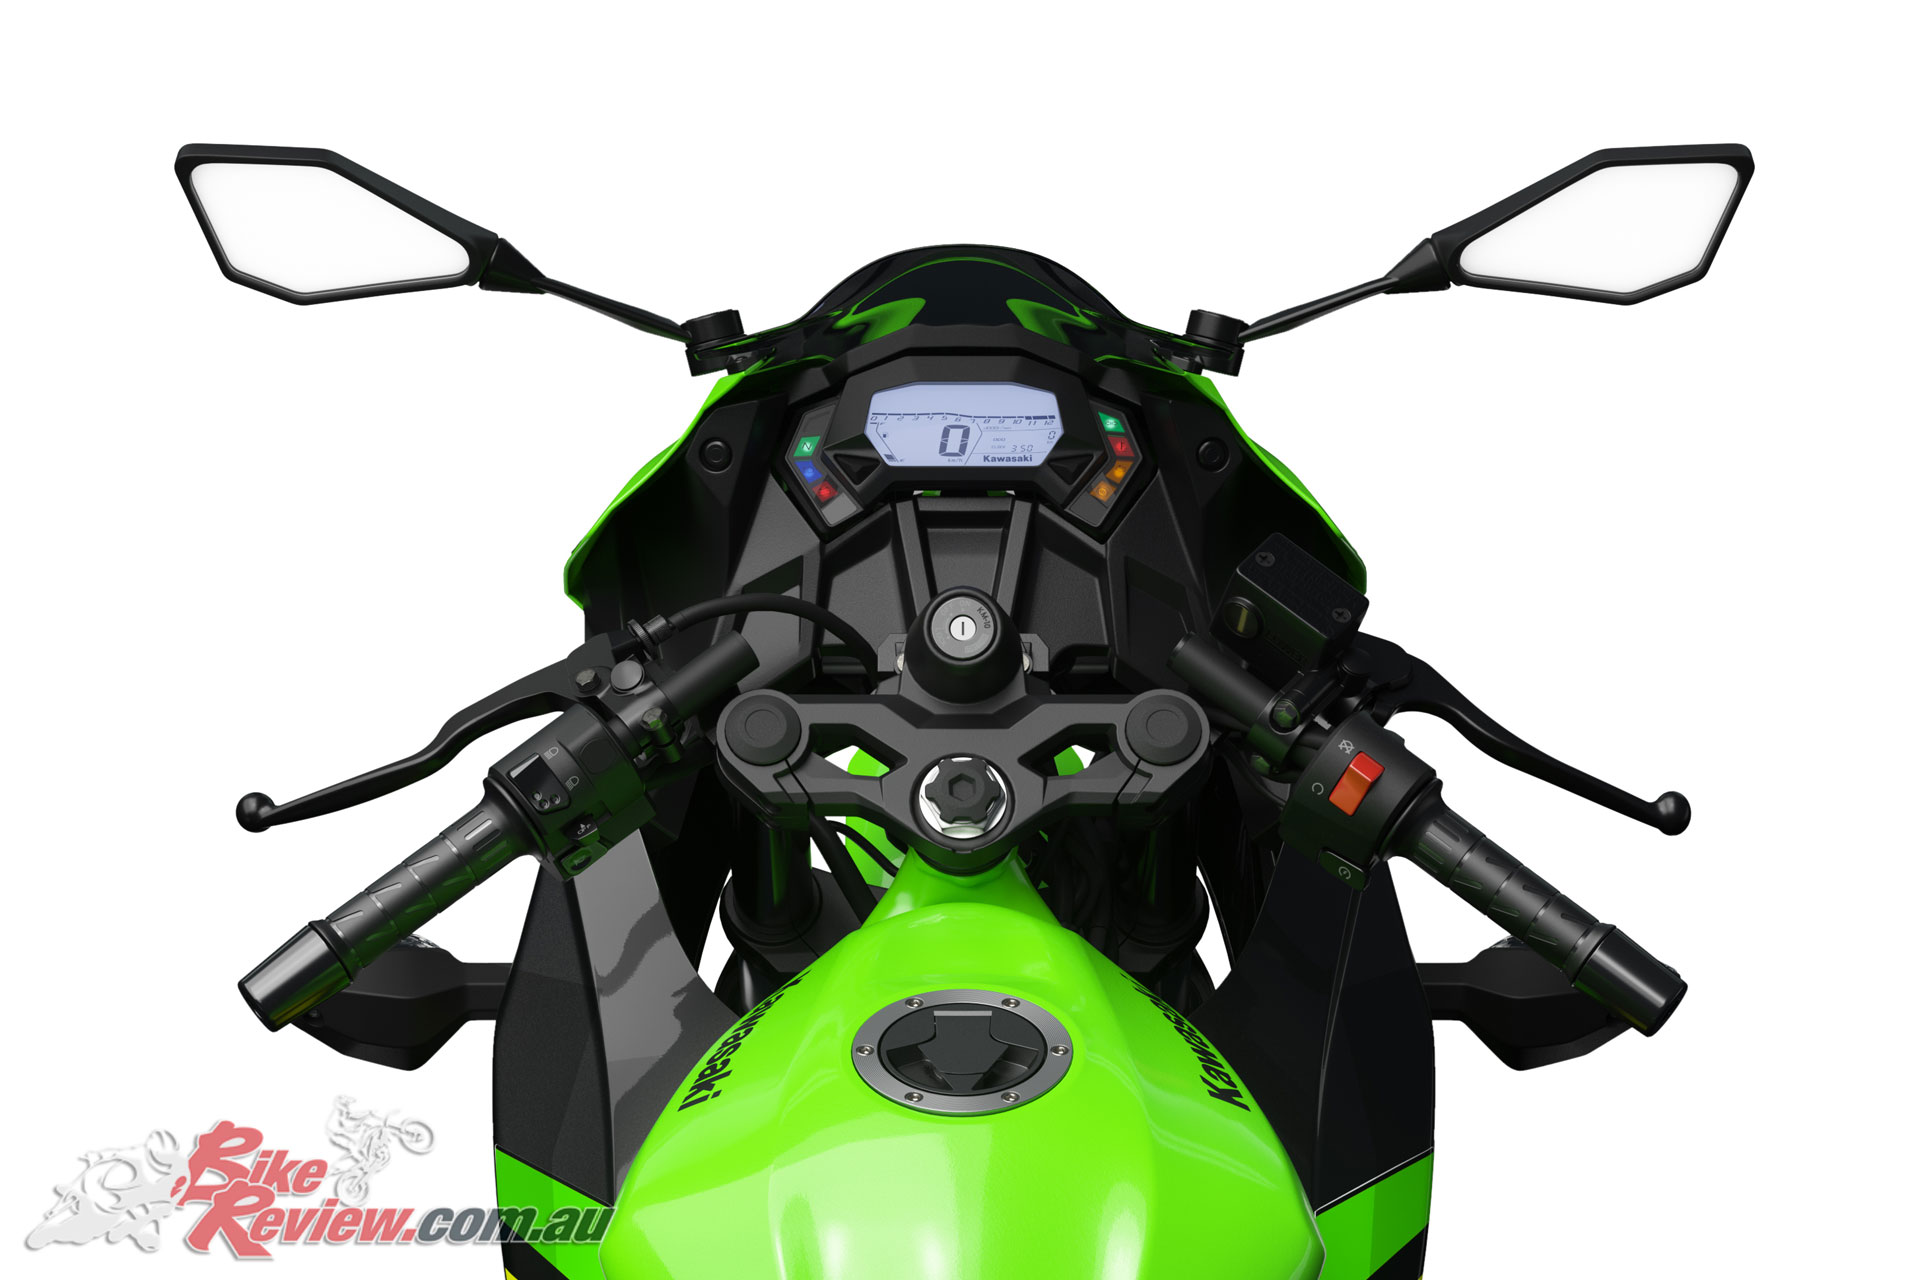 2019 Kawasaki Ninja 125 - The Ninja offers an aggressive clip-on style 'bar assembly